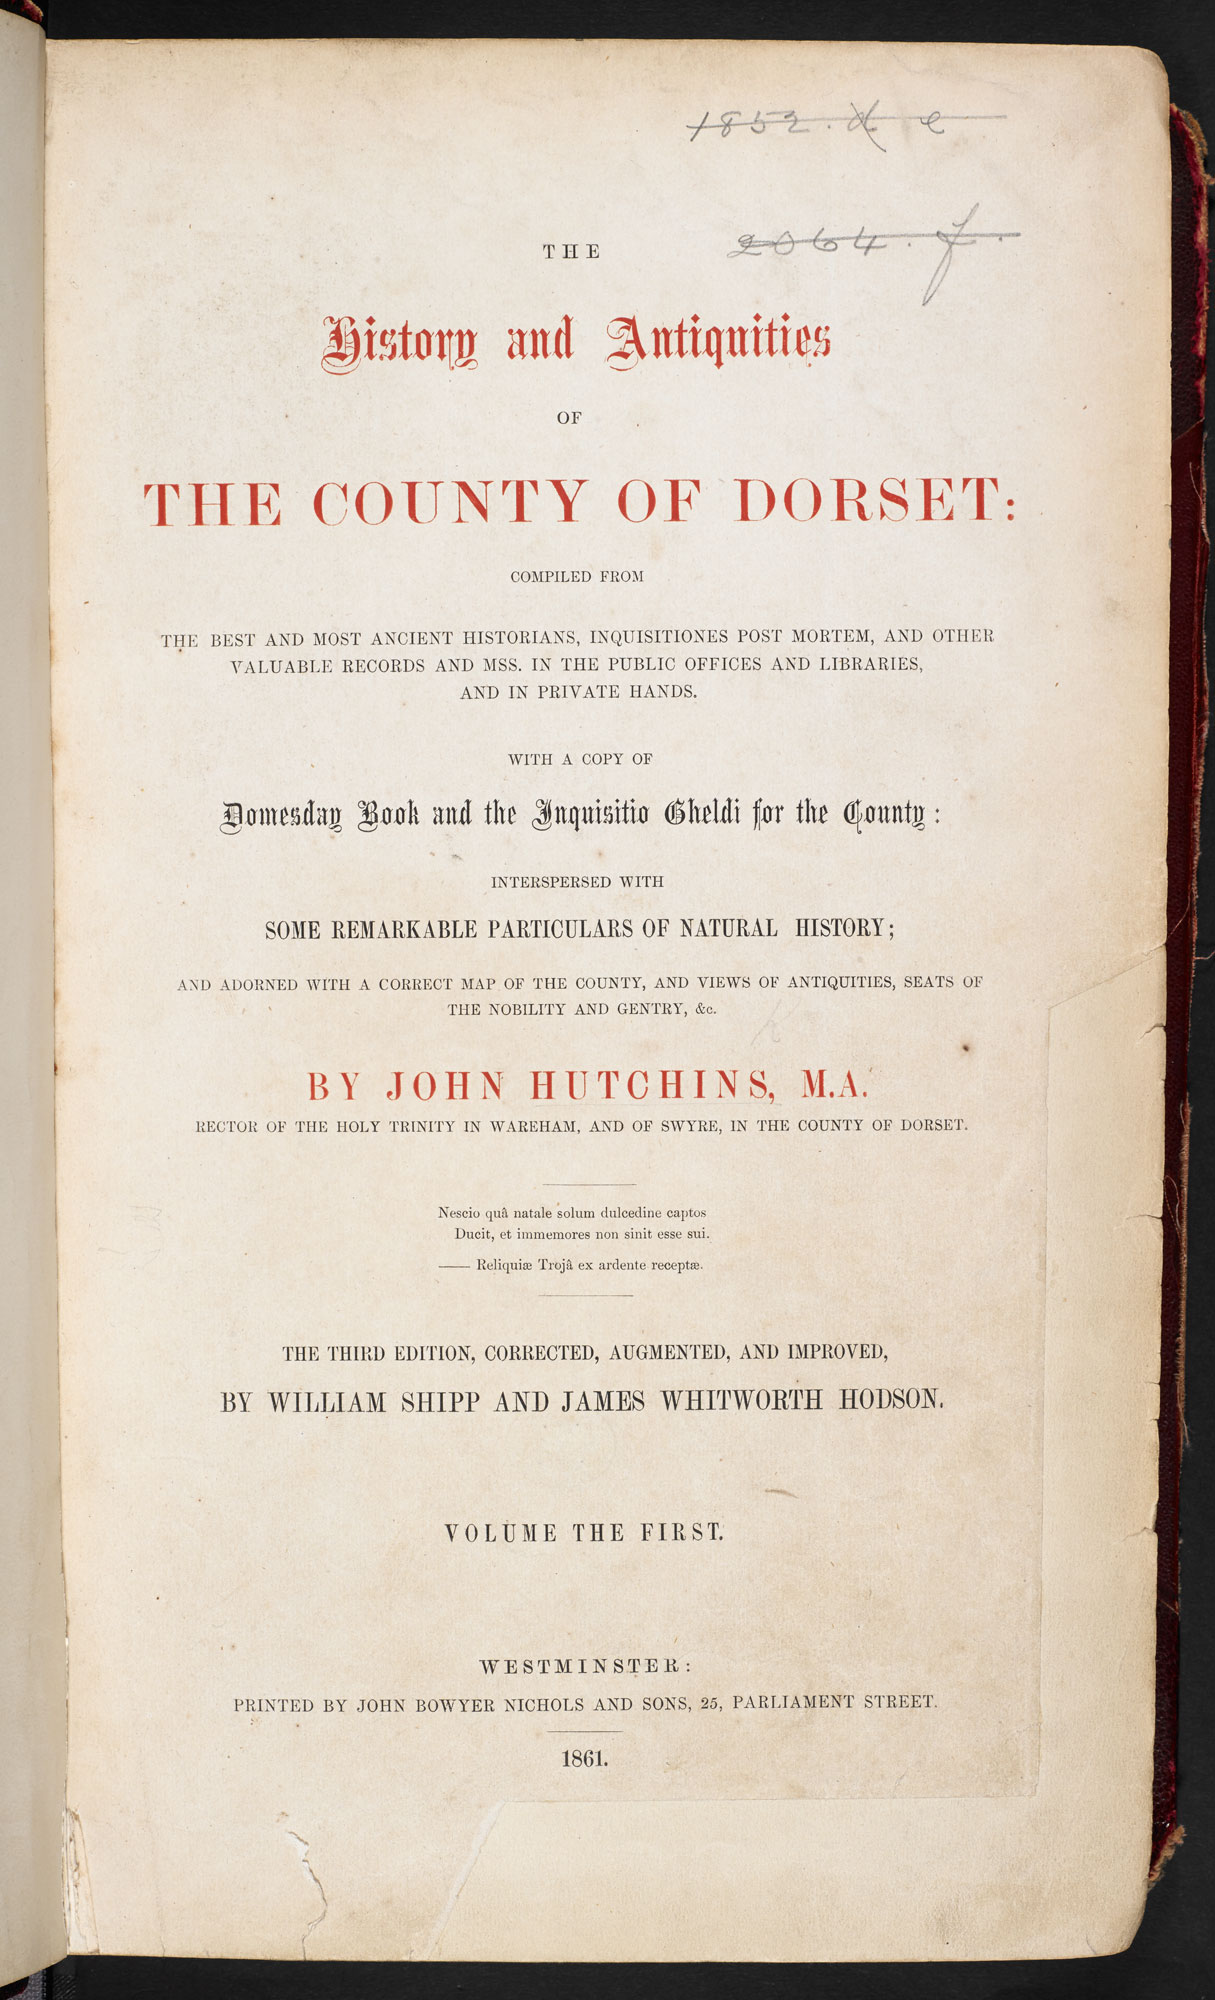 The History and Antiquities of the County of Dorset [page: vol. 1 title page]